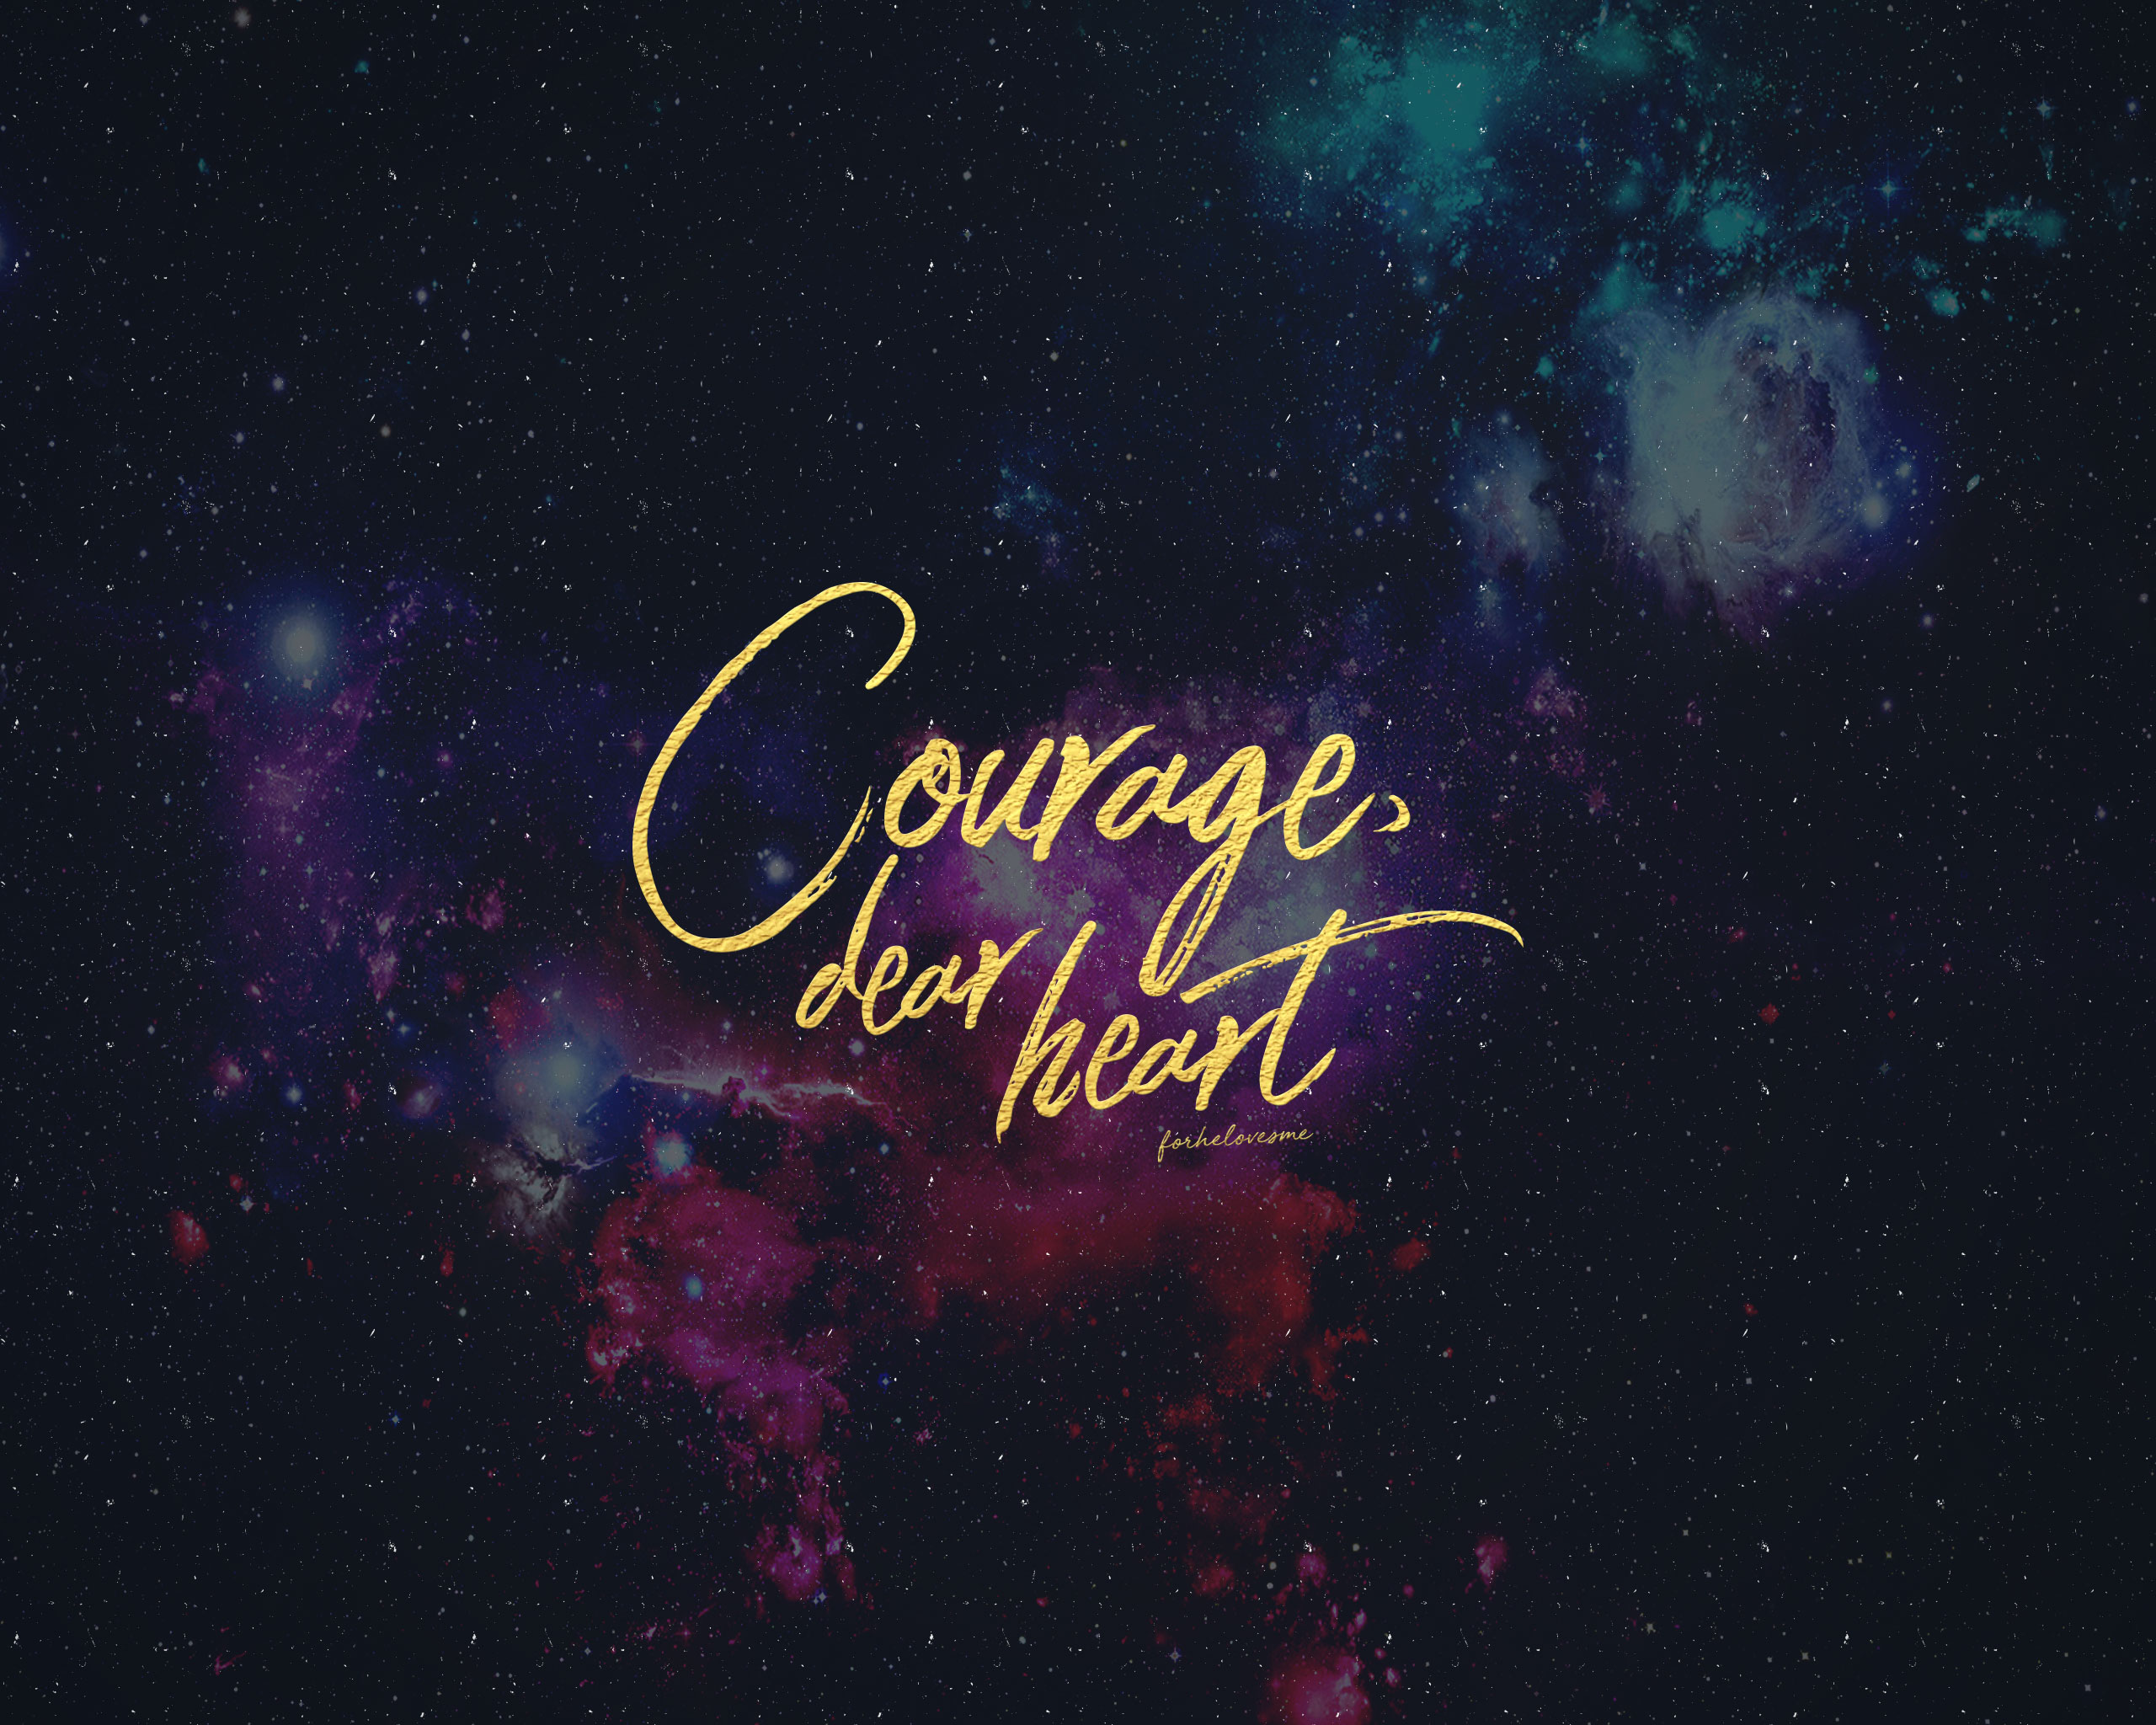 Iphone Wallpaper Bible Quotes For He Loves Me Courage Dear Heart